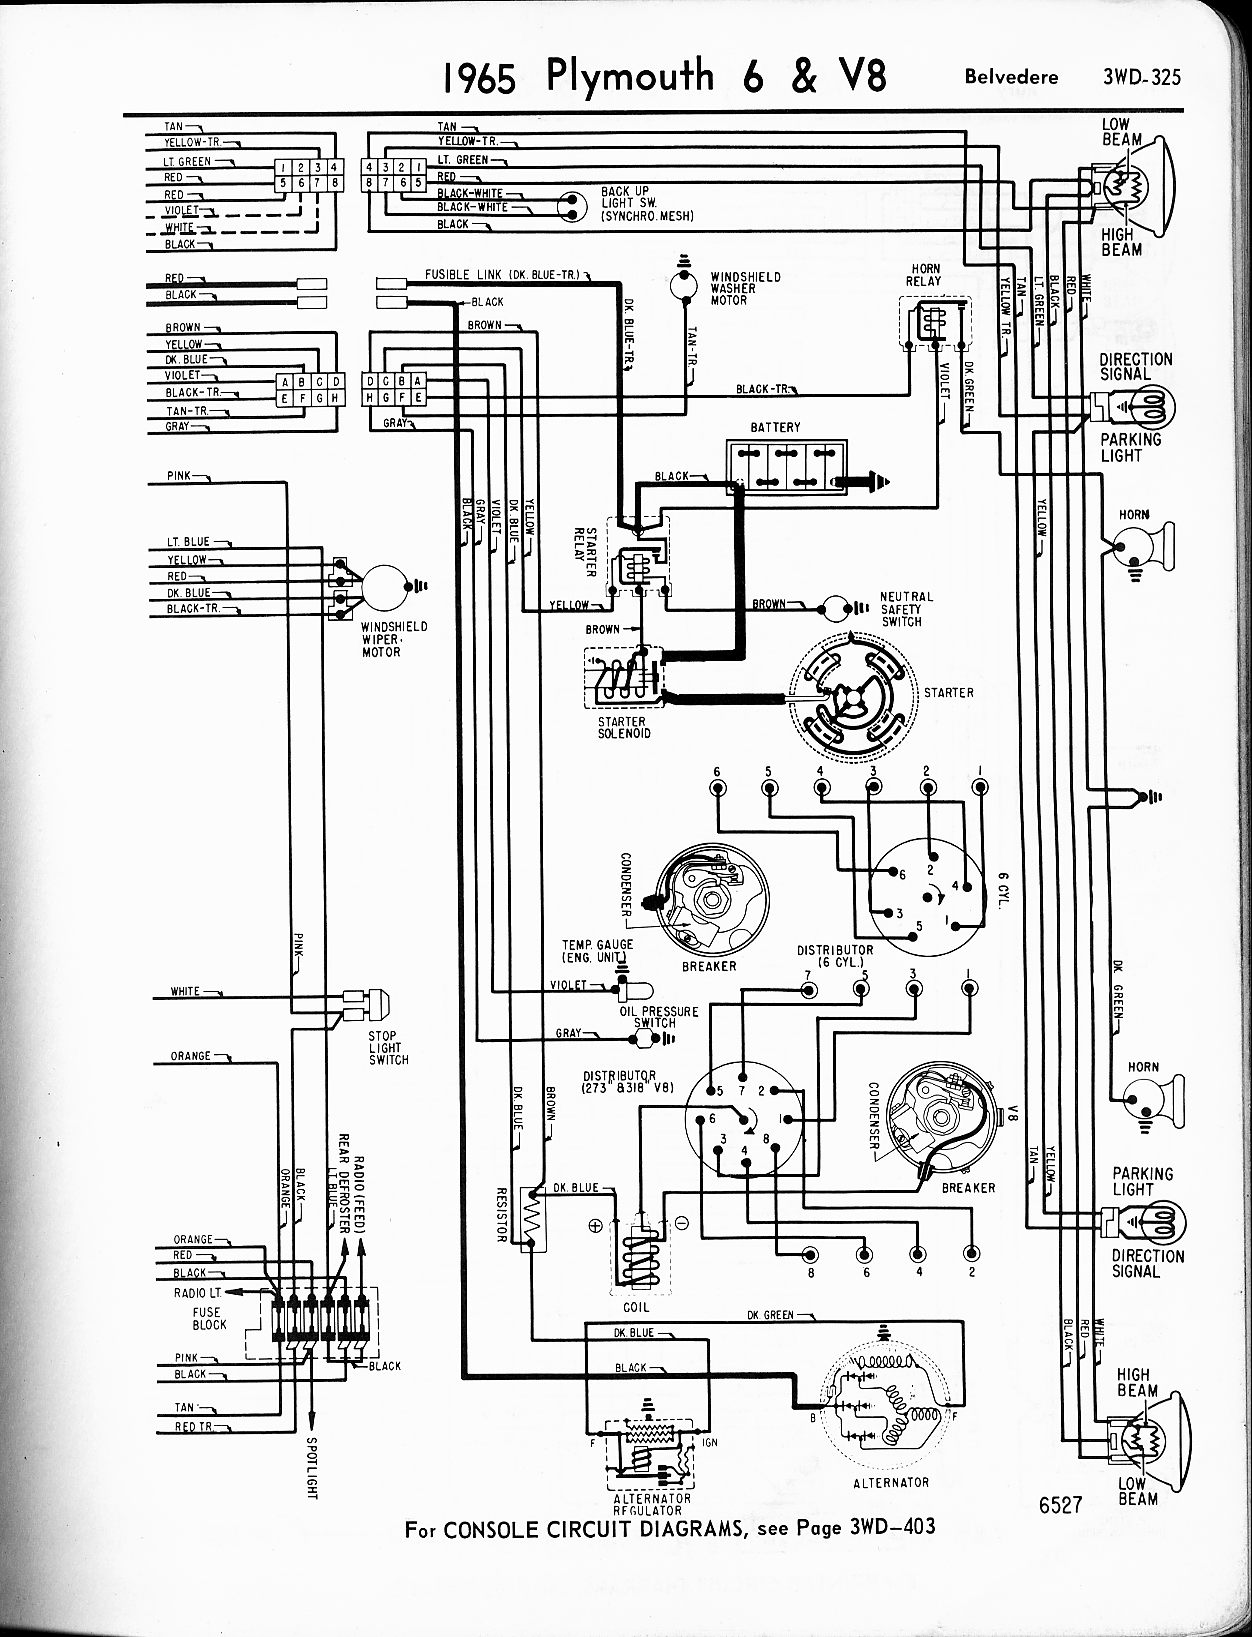 56 Plymouth Wiring Diagram Library Ford 1965 6 V8 Belvedere Right Page 1956